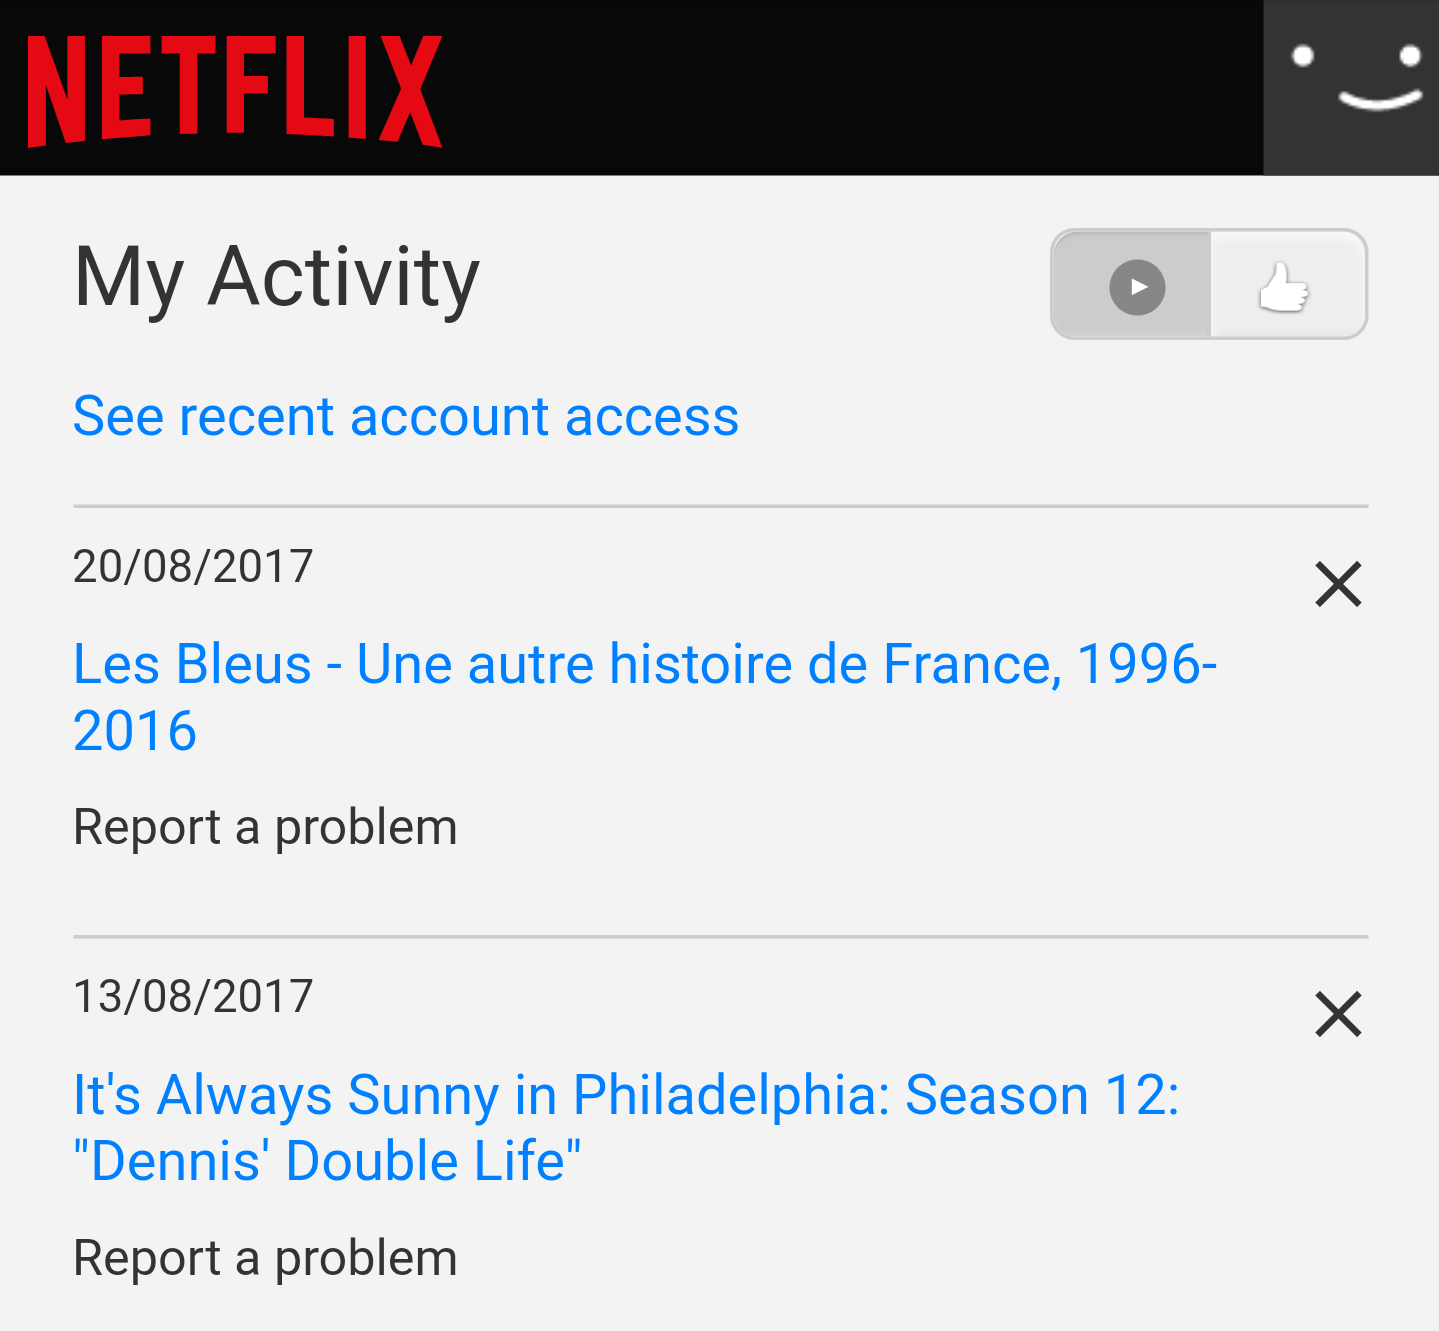 Netflix codes: How to access full library of hidden genres, films